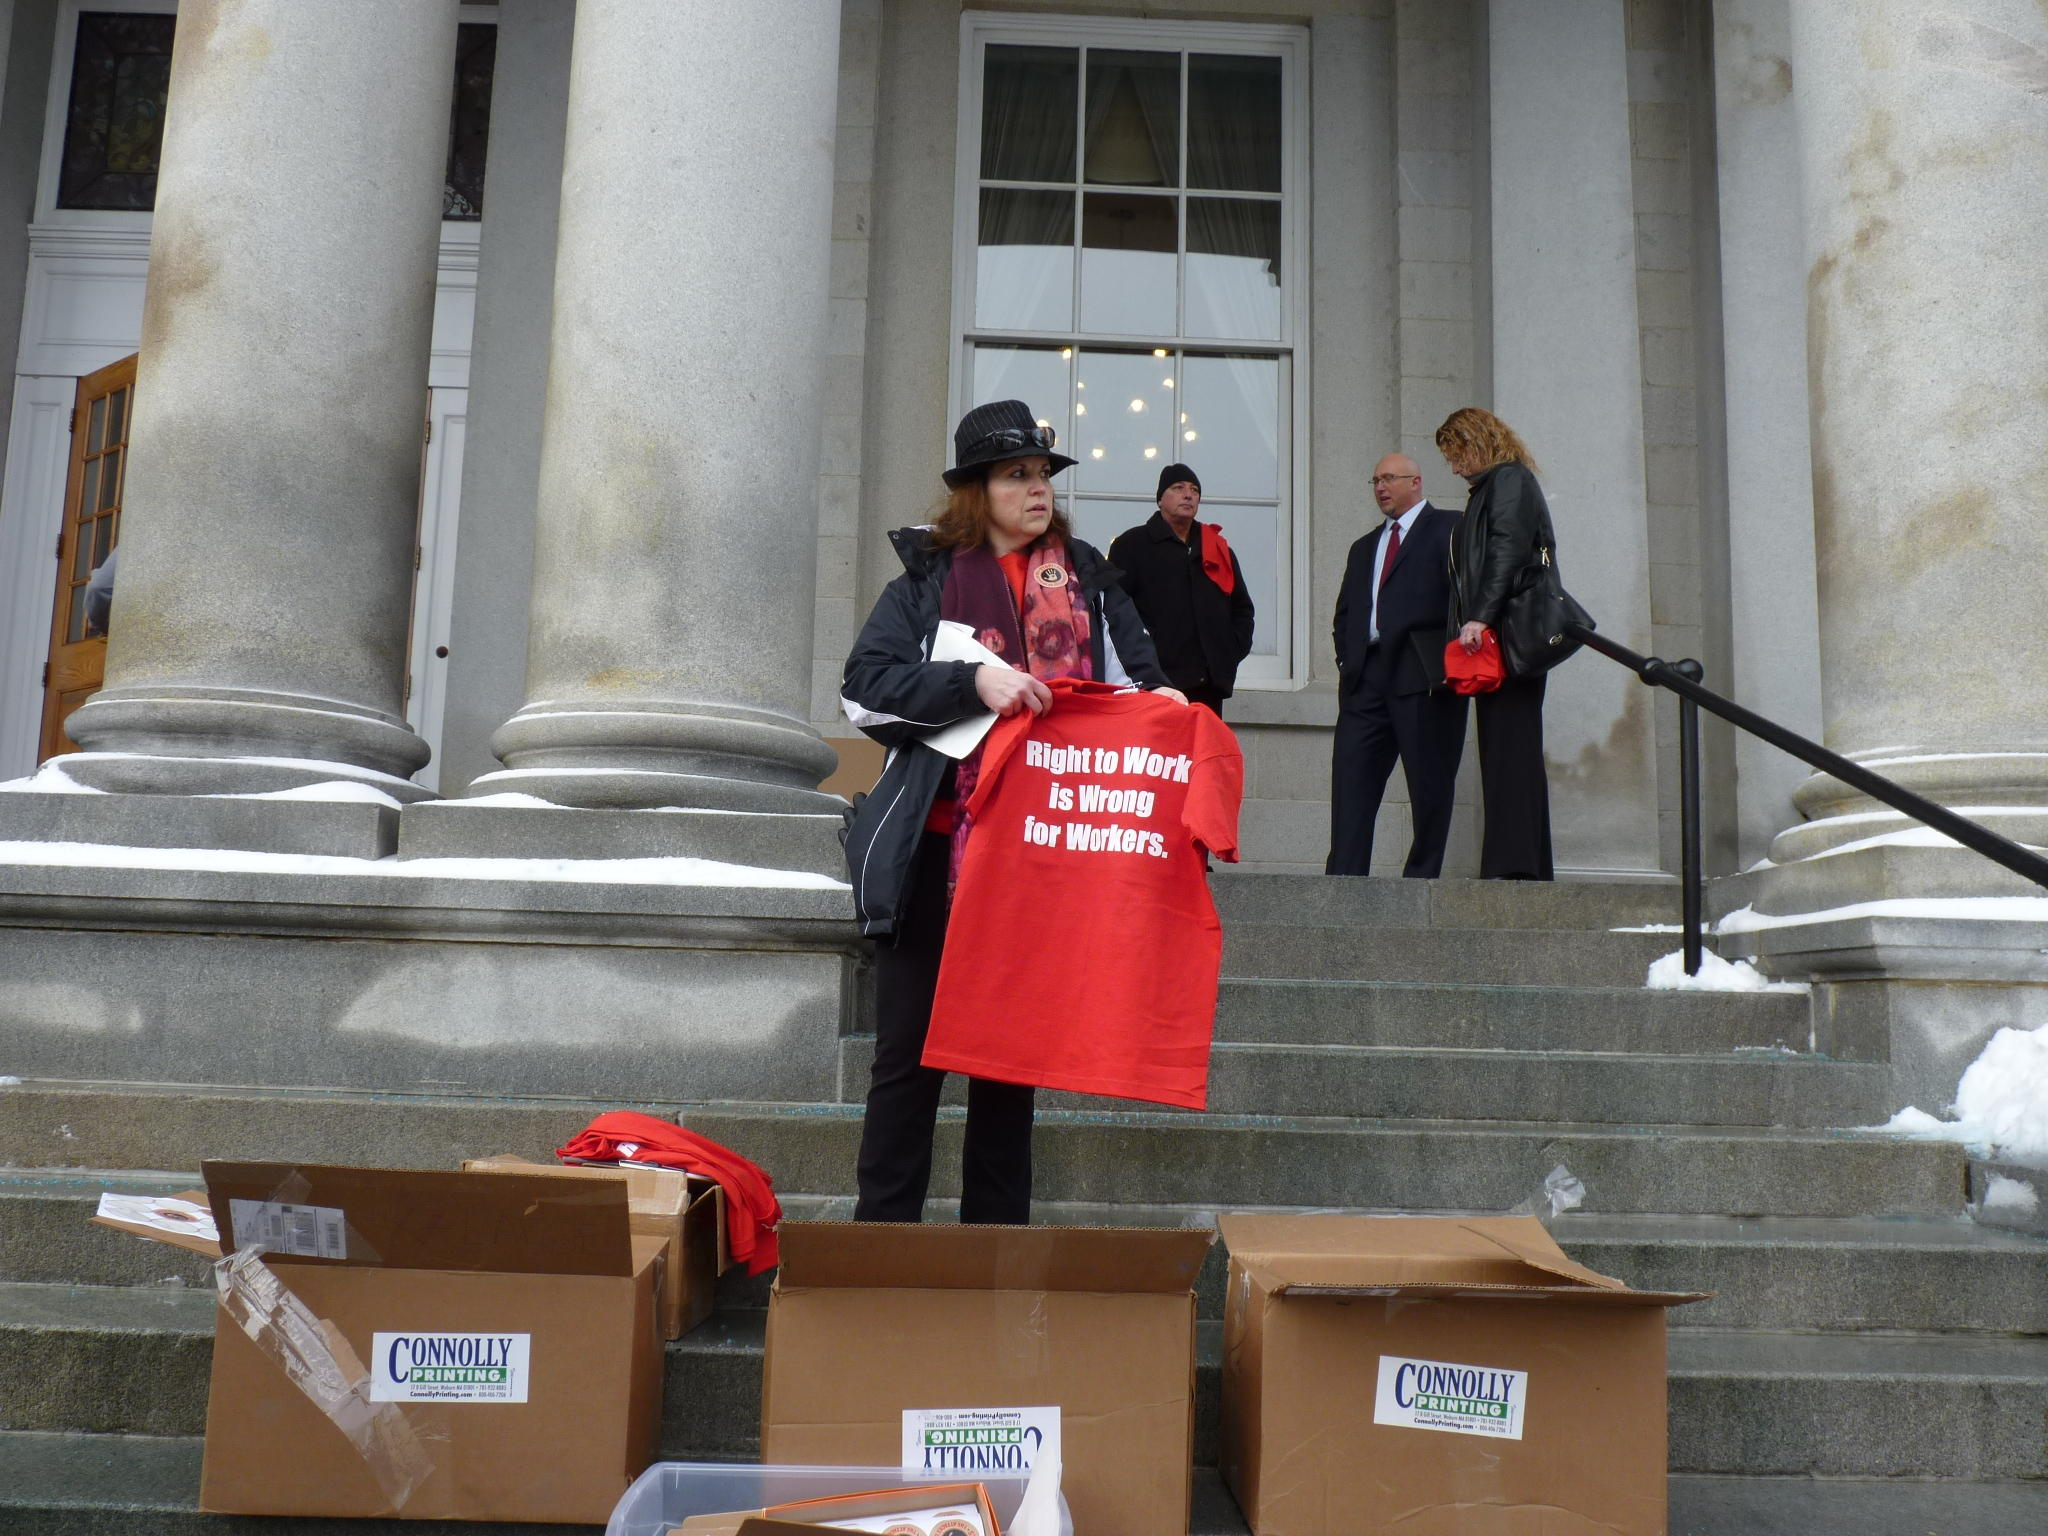 Nh Housemittee Recommends Against Passing 'righttowork' Bill